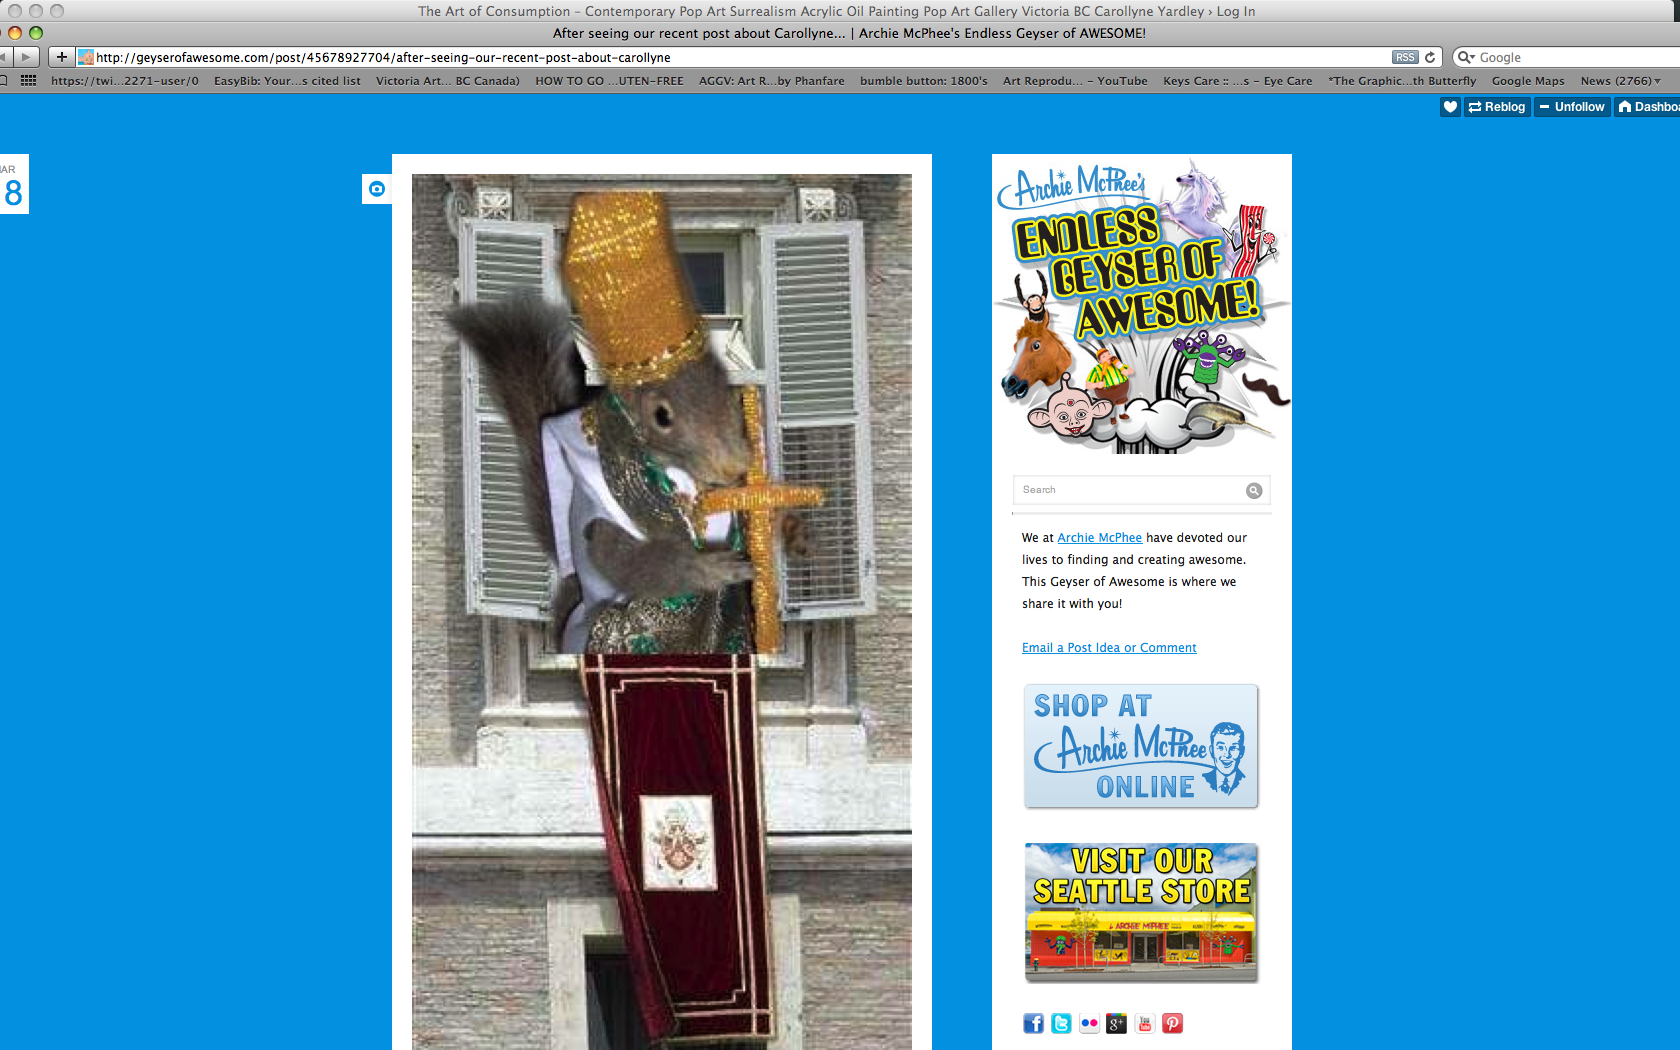 Snapshot of article at Archie McPhee website showing Pope Pinenuts.